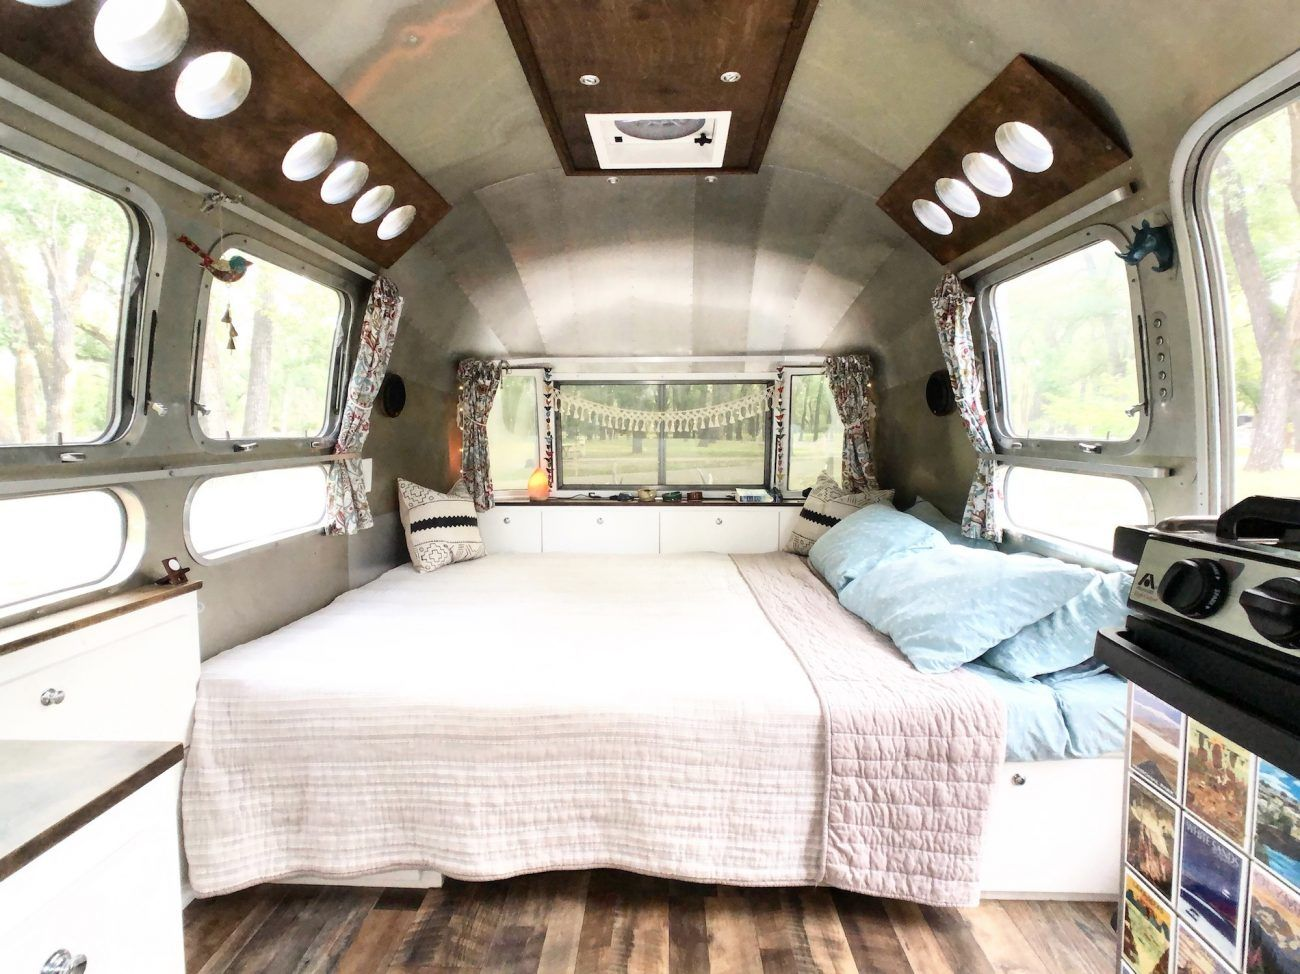 Airstream Dinette turned into bed. #airstreambed #airstream #airstreamrenovation #airstreamdreams #tinyhouse #tinyhouseonwheels #fulltimetravel | tinyshinyhome.com